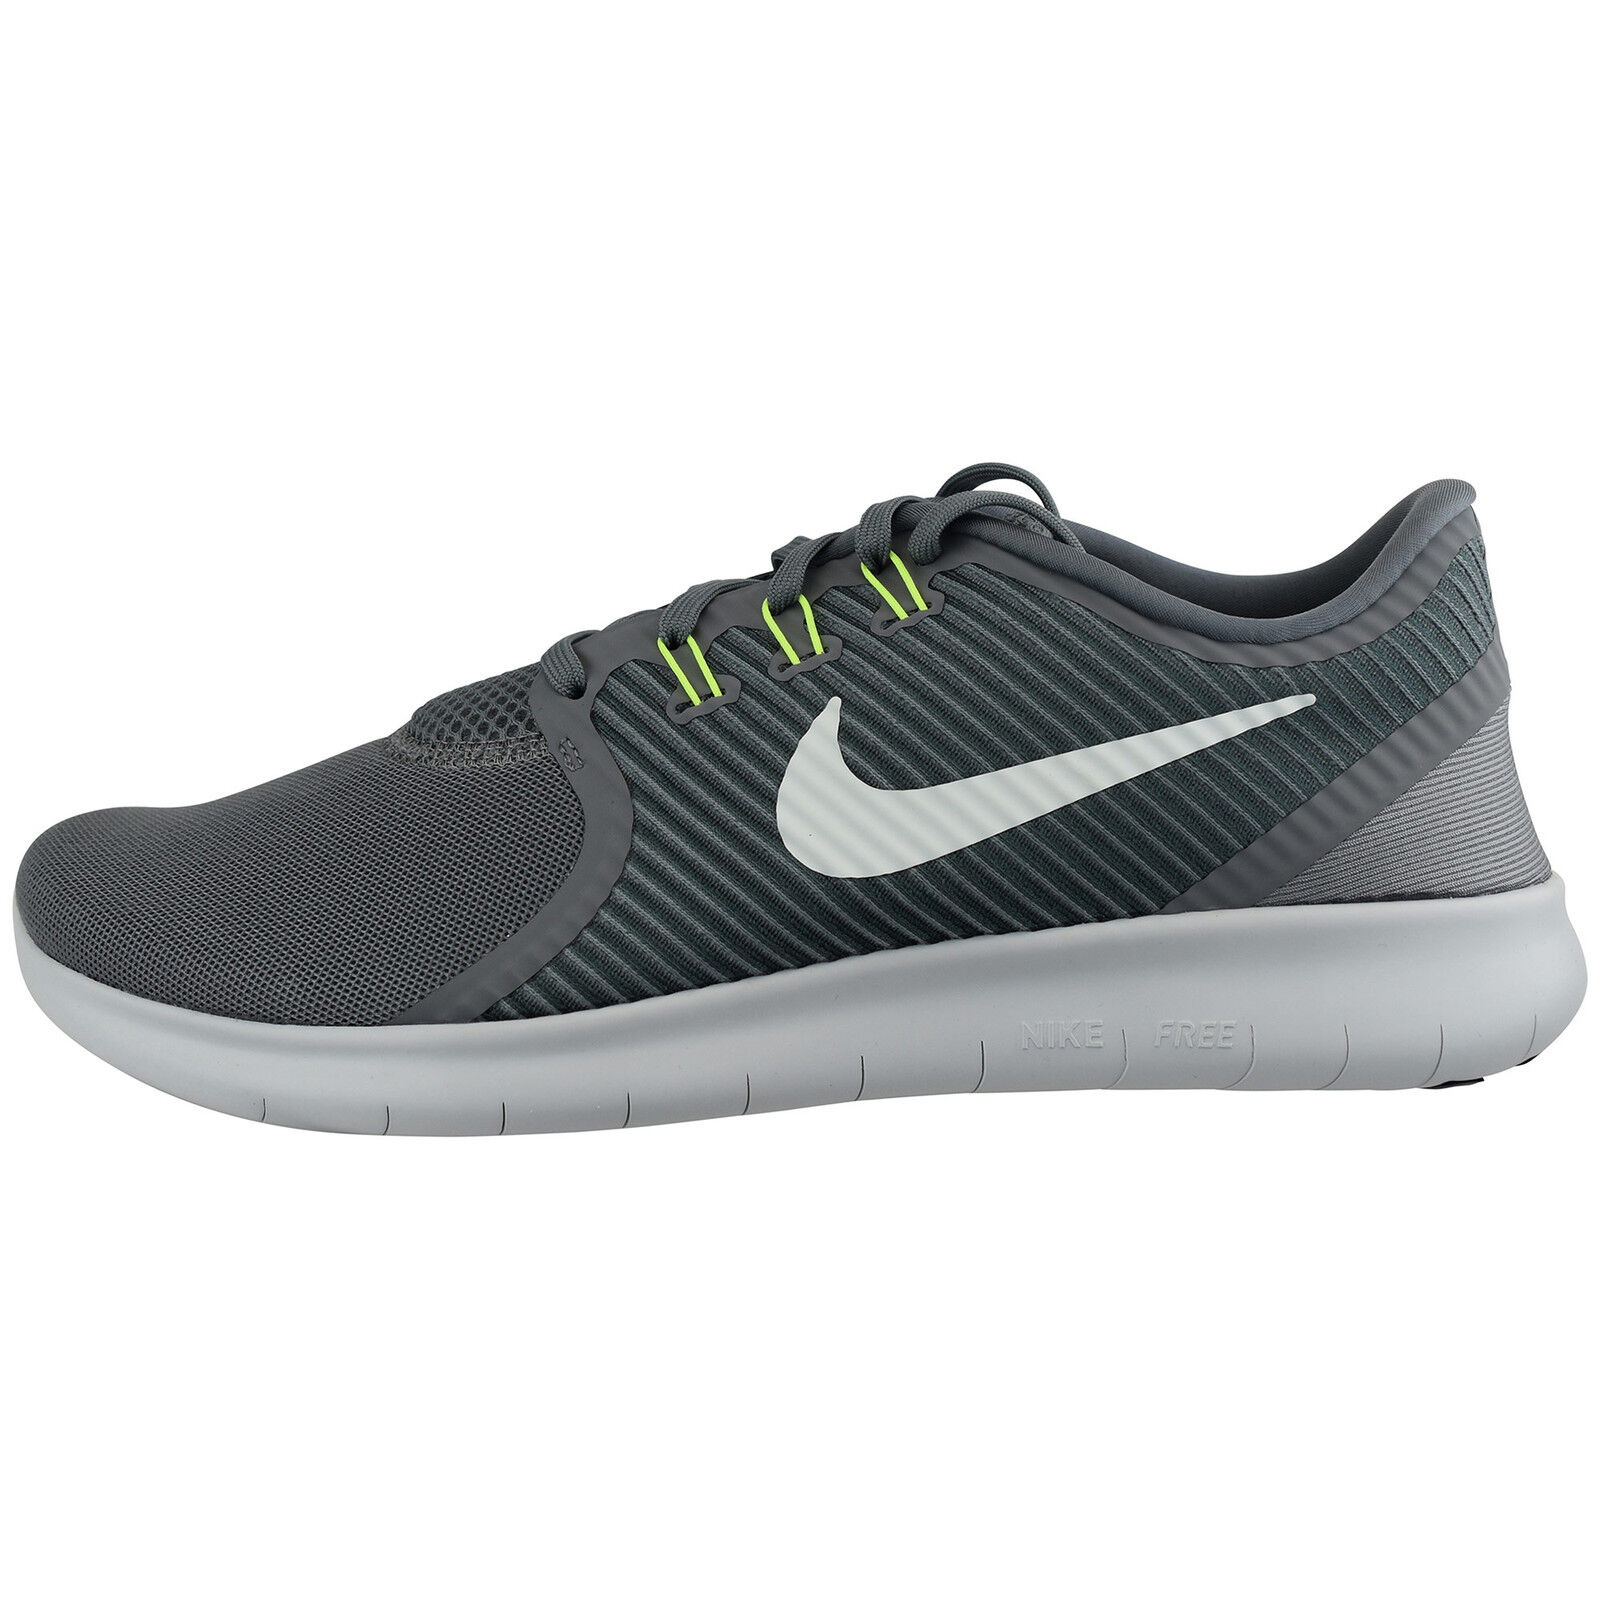 Nike Absente Rn Cmtr 831510-003 831510-003 831510-003 Lifestyle Chaussures de Course Baskets Loisirs 6ada97